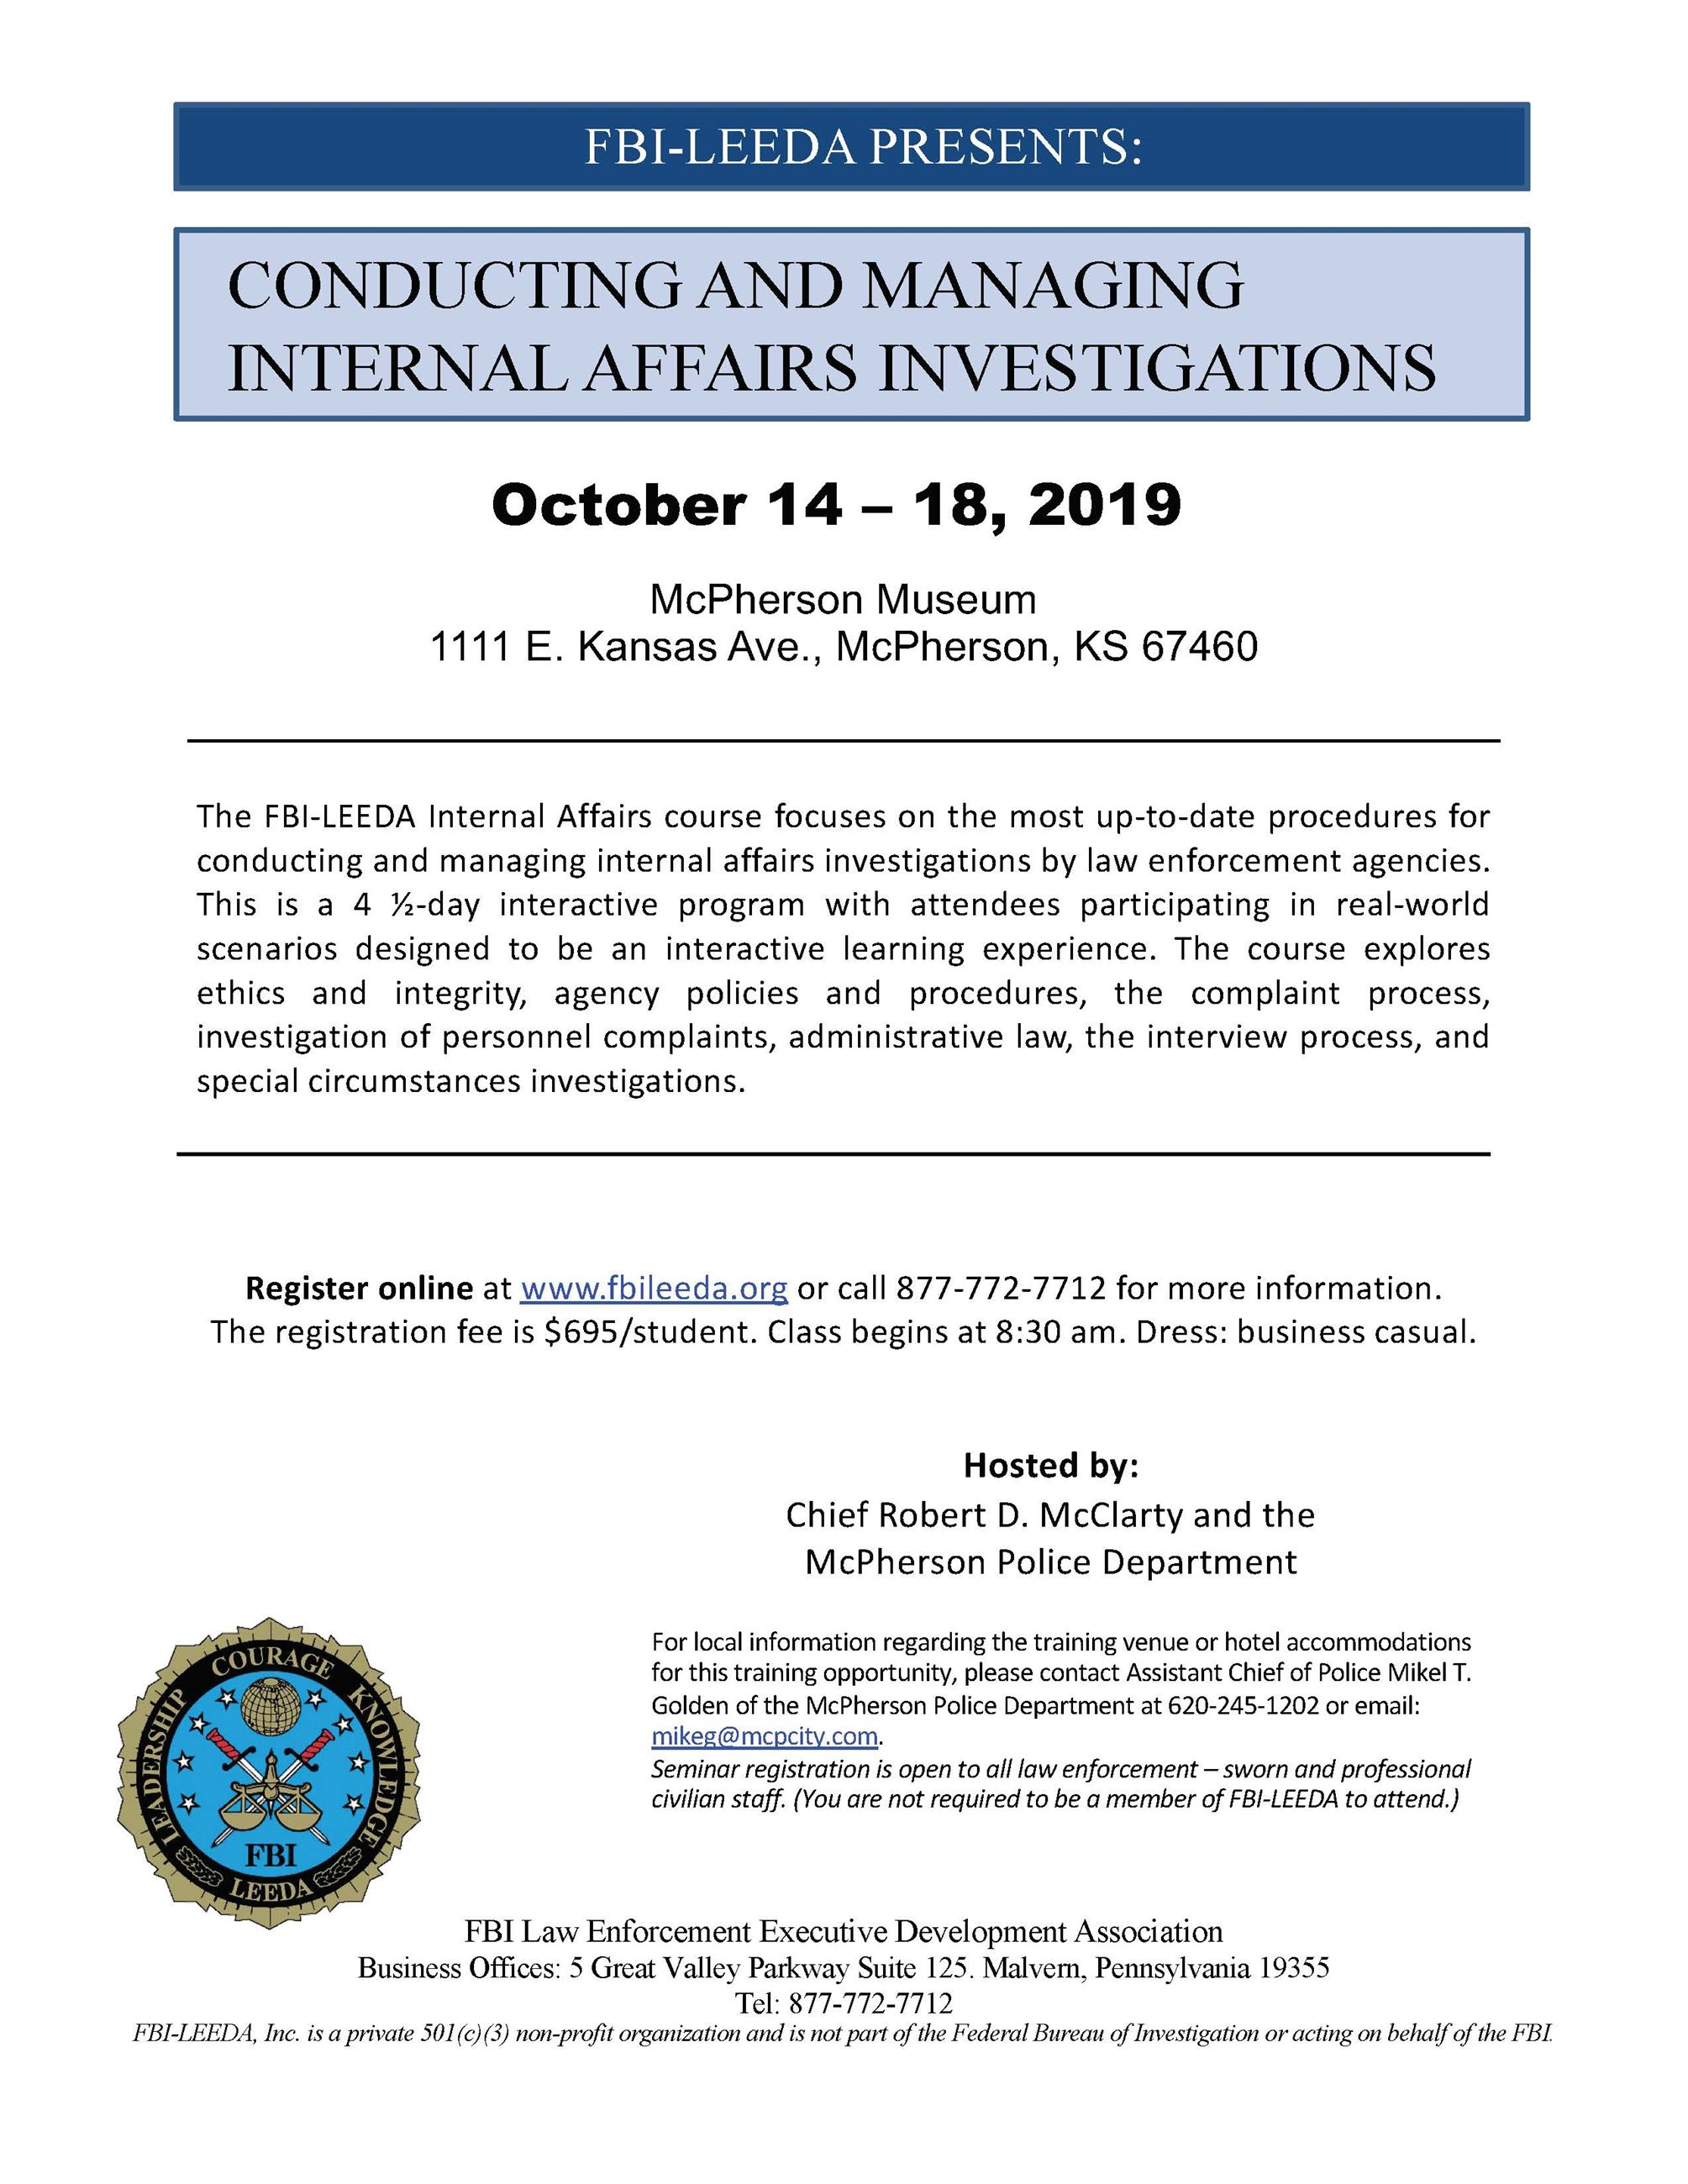 Flyer information promoting police training provided by the FBI